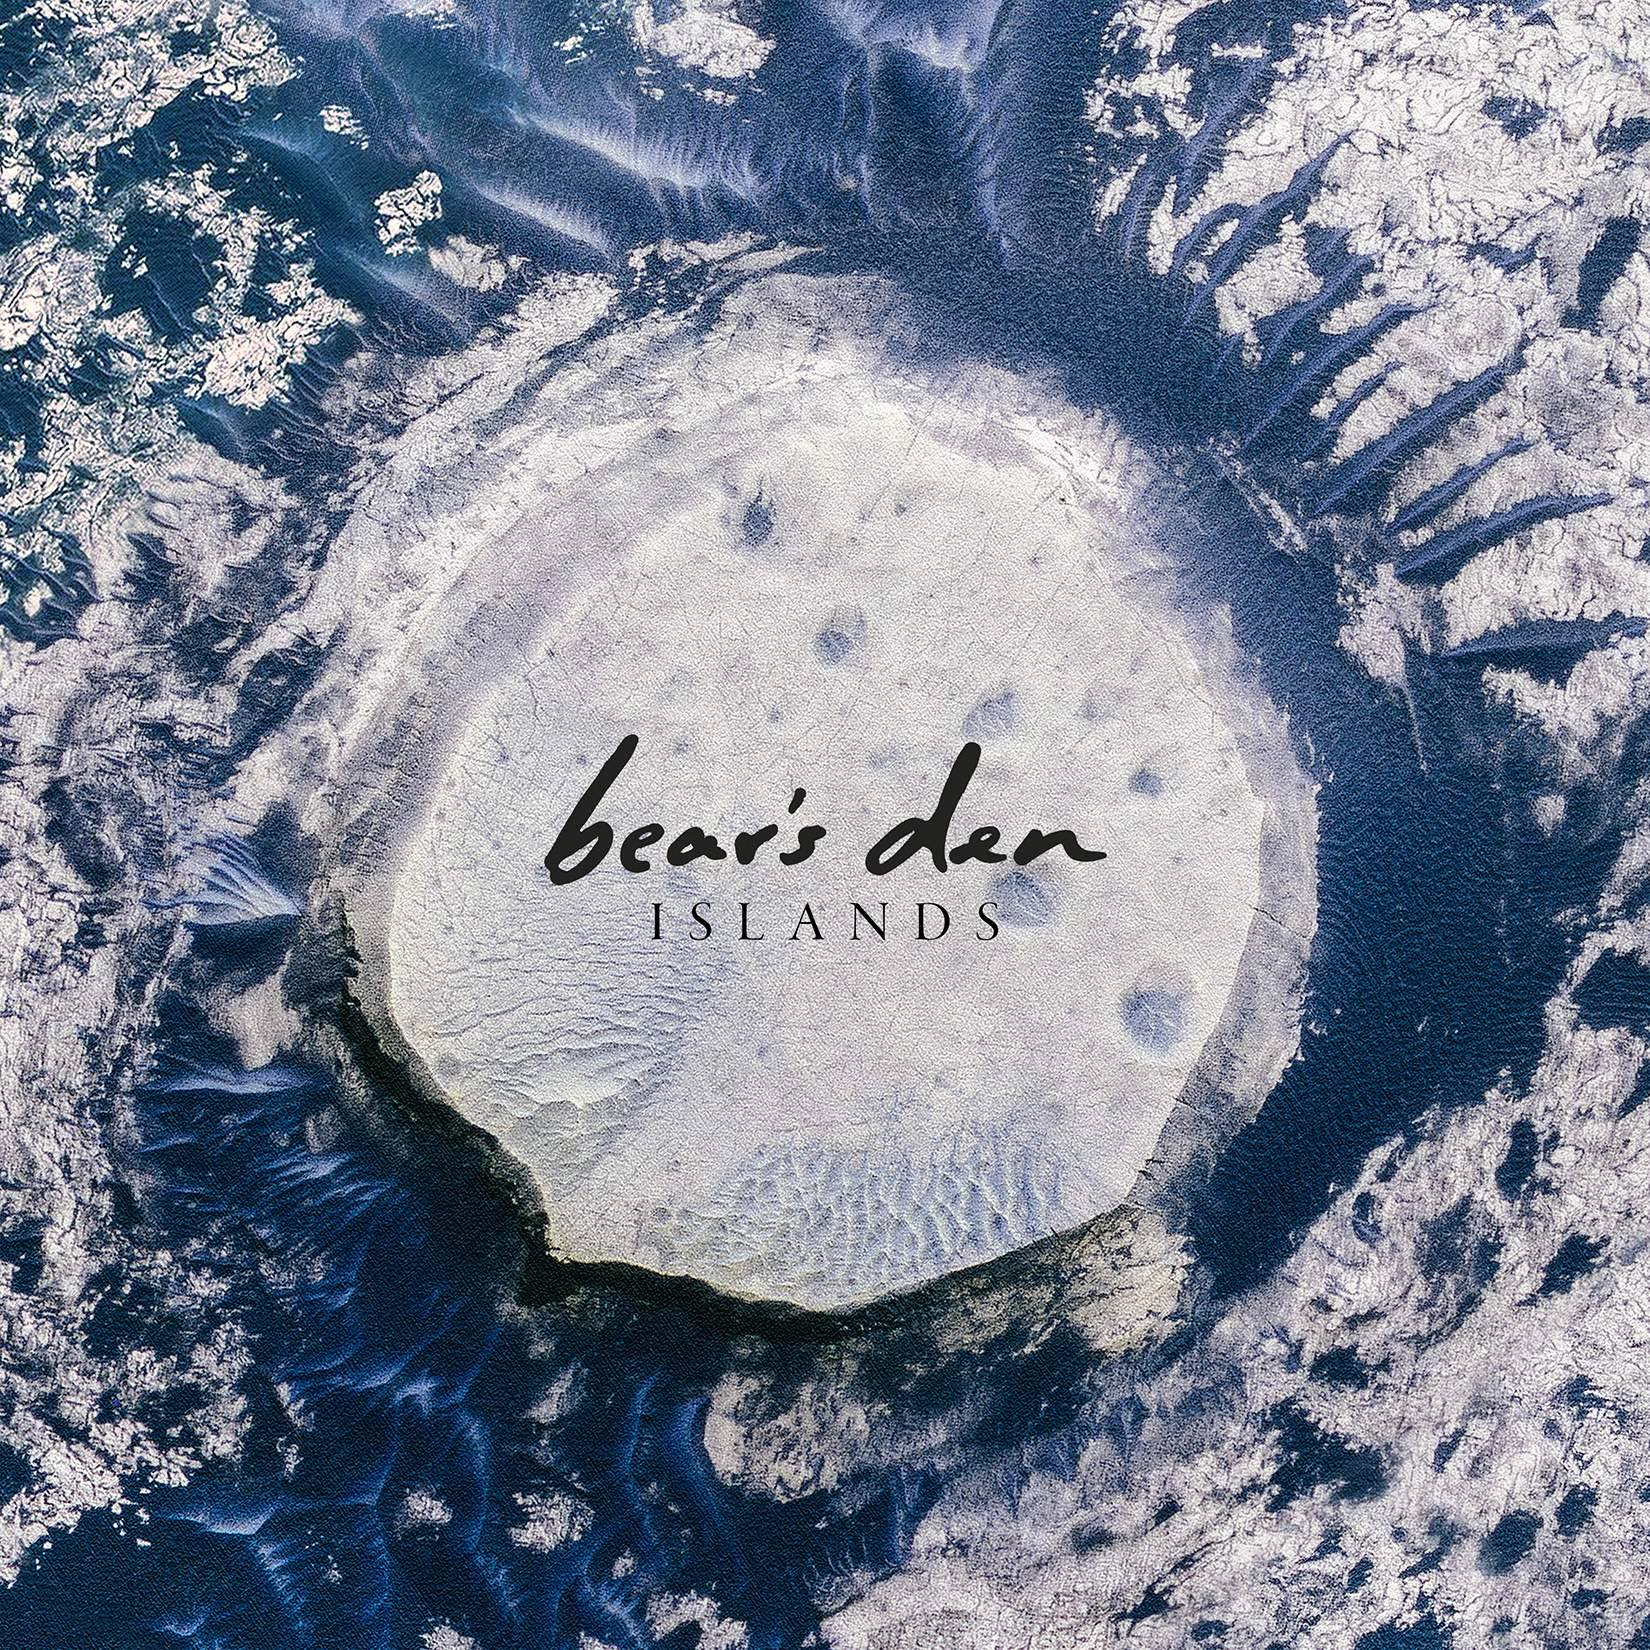 Bear's Den: Islands